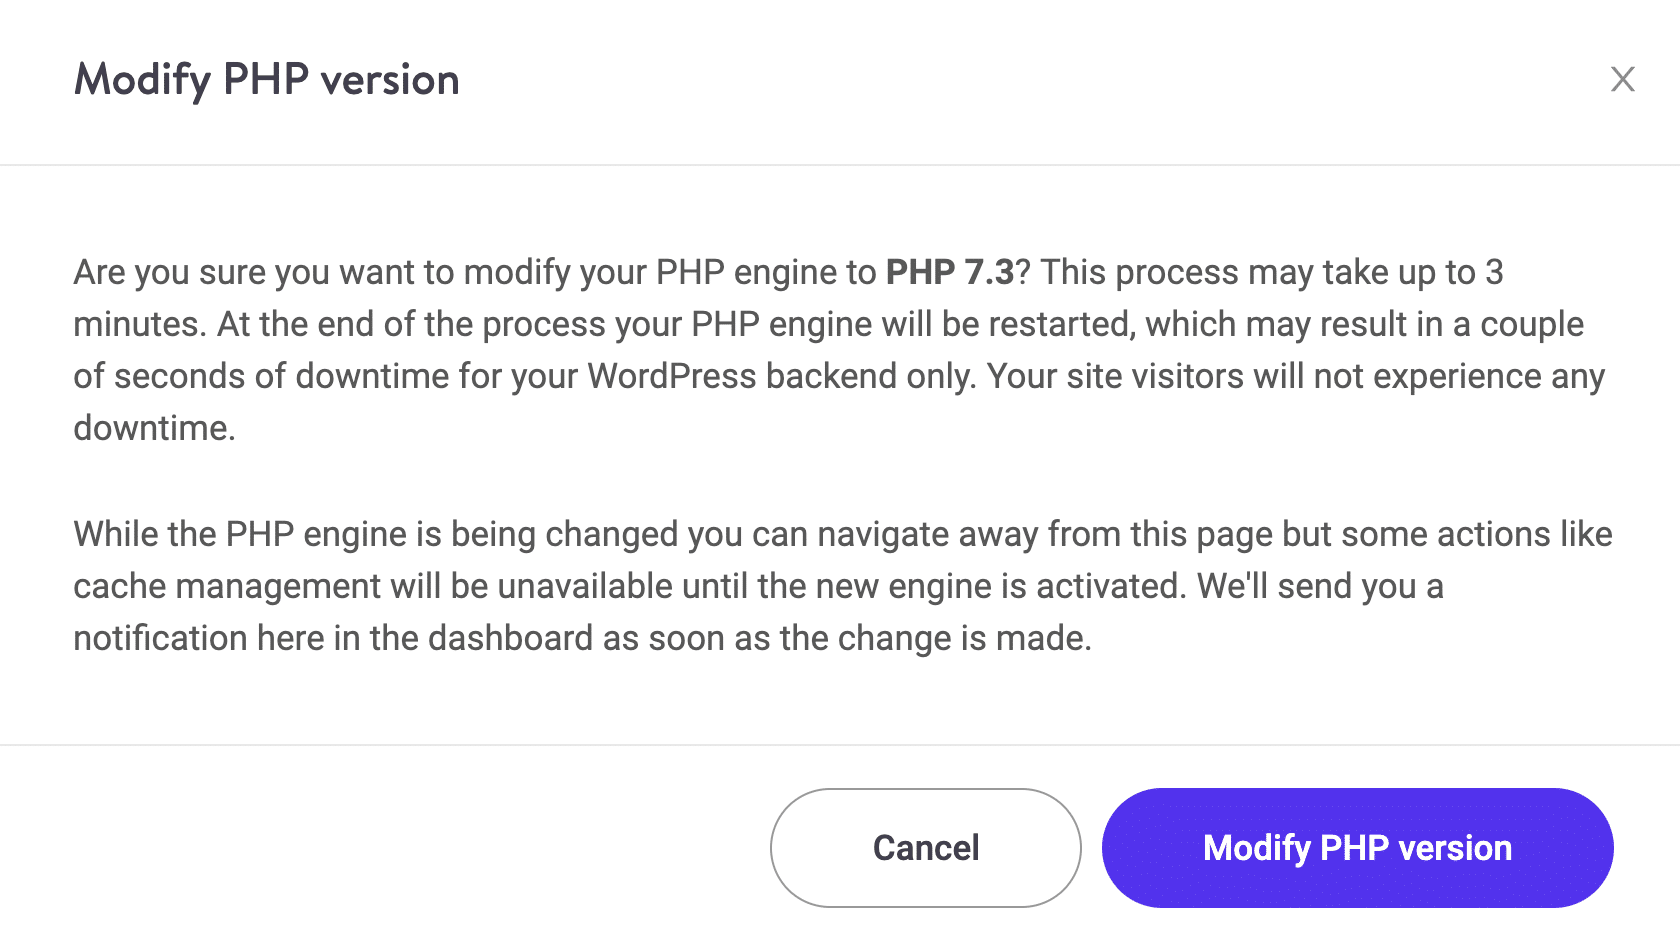 Modify PHP version confirmation